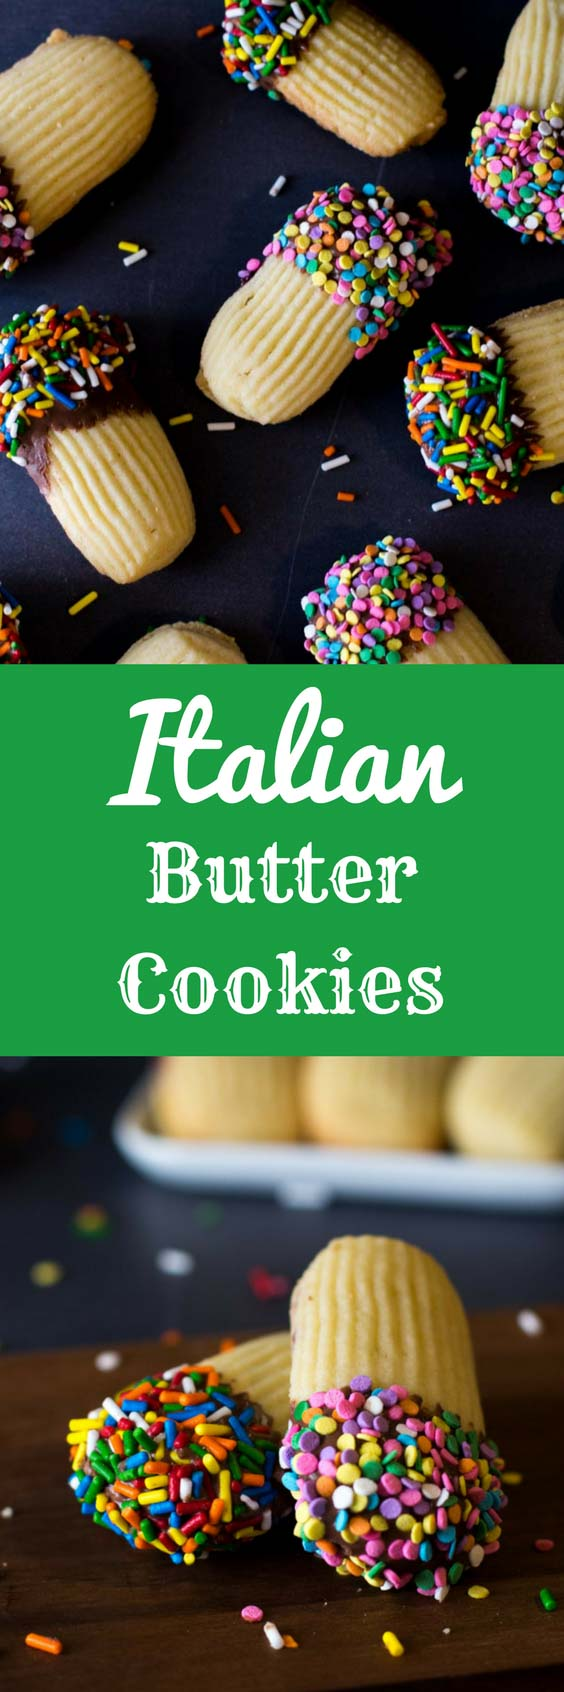 With just a few simple ingredients, you'll be able to make these bakery-style Italian Butter Cookies right at home. And for a real treat, you can make jam sandwiches out of them and dip them in chocolate! #cookies #italianbuttercookies #italiancookies #buttercookies #spritzcookies | bakedujour.com